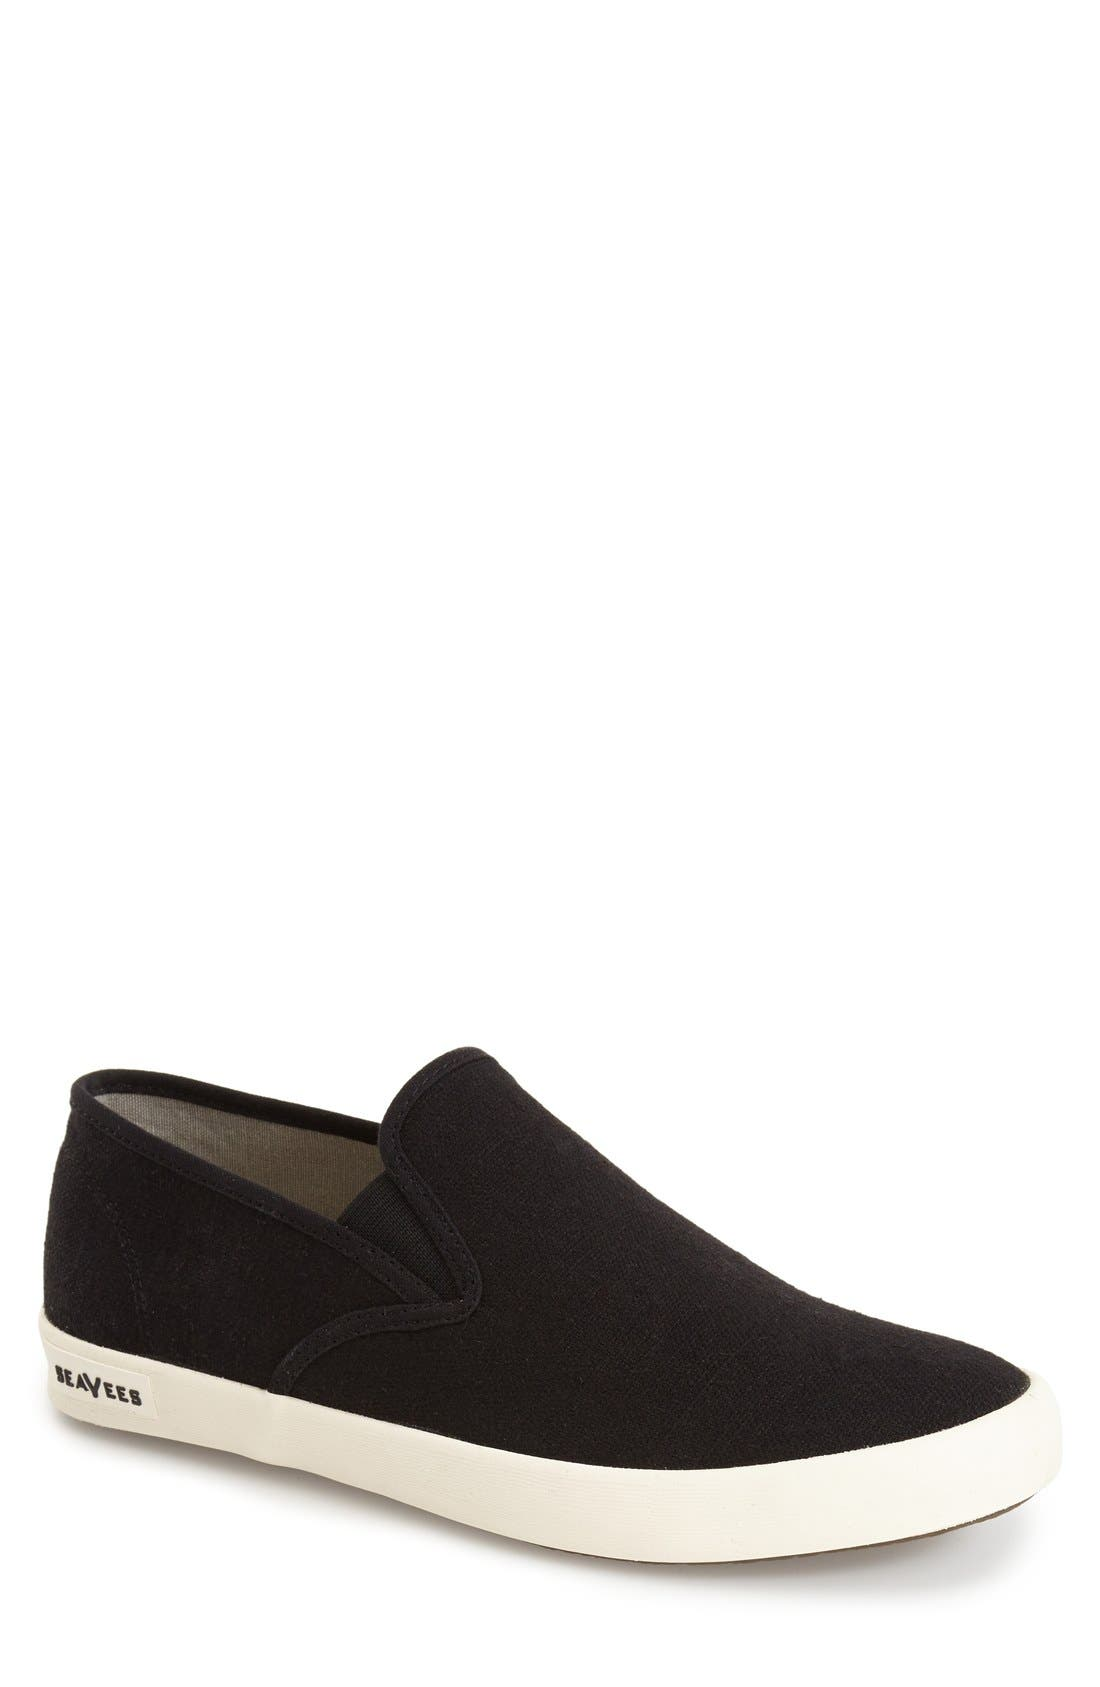 Alternate Image 1 Selected - SeaVees '02/64 Baja' Slip-On (Men)